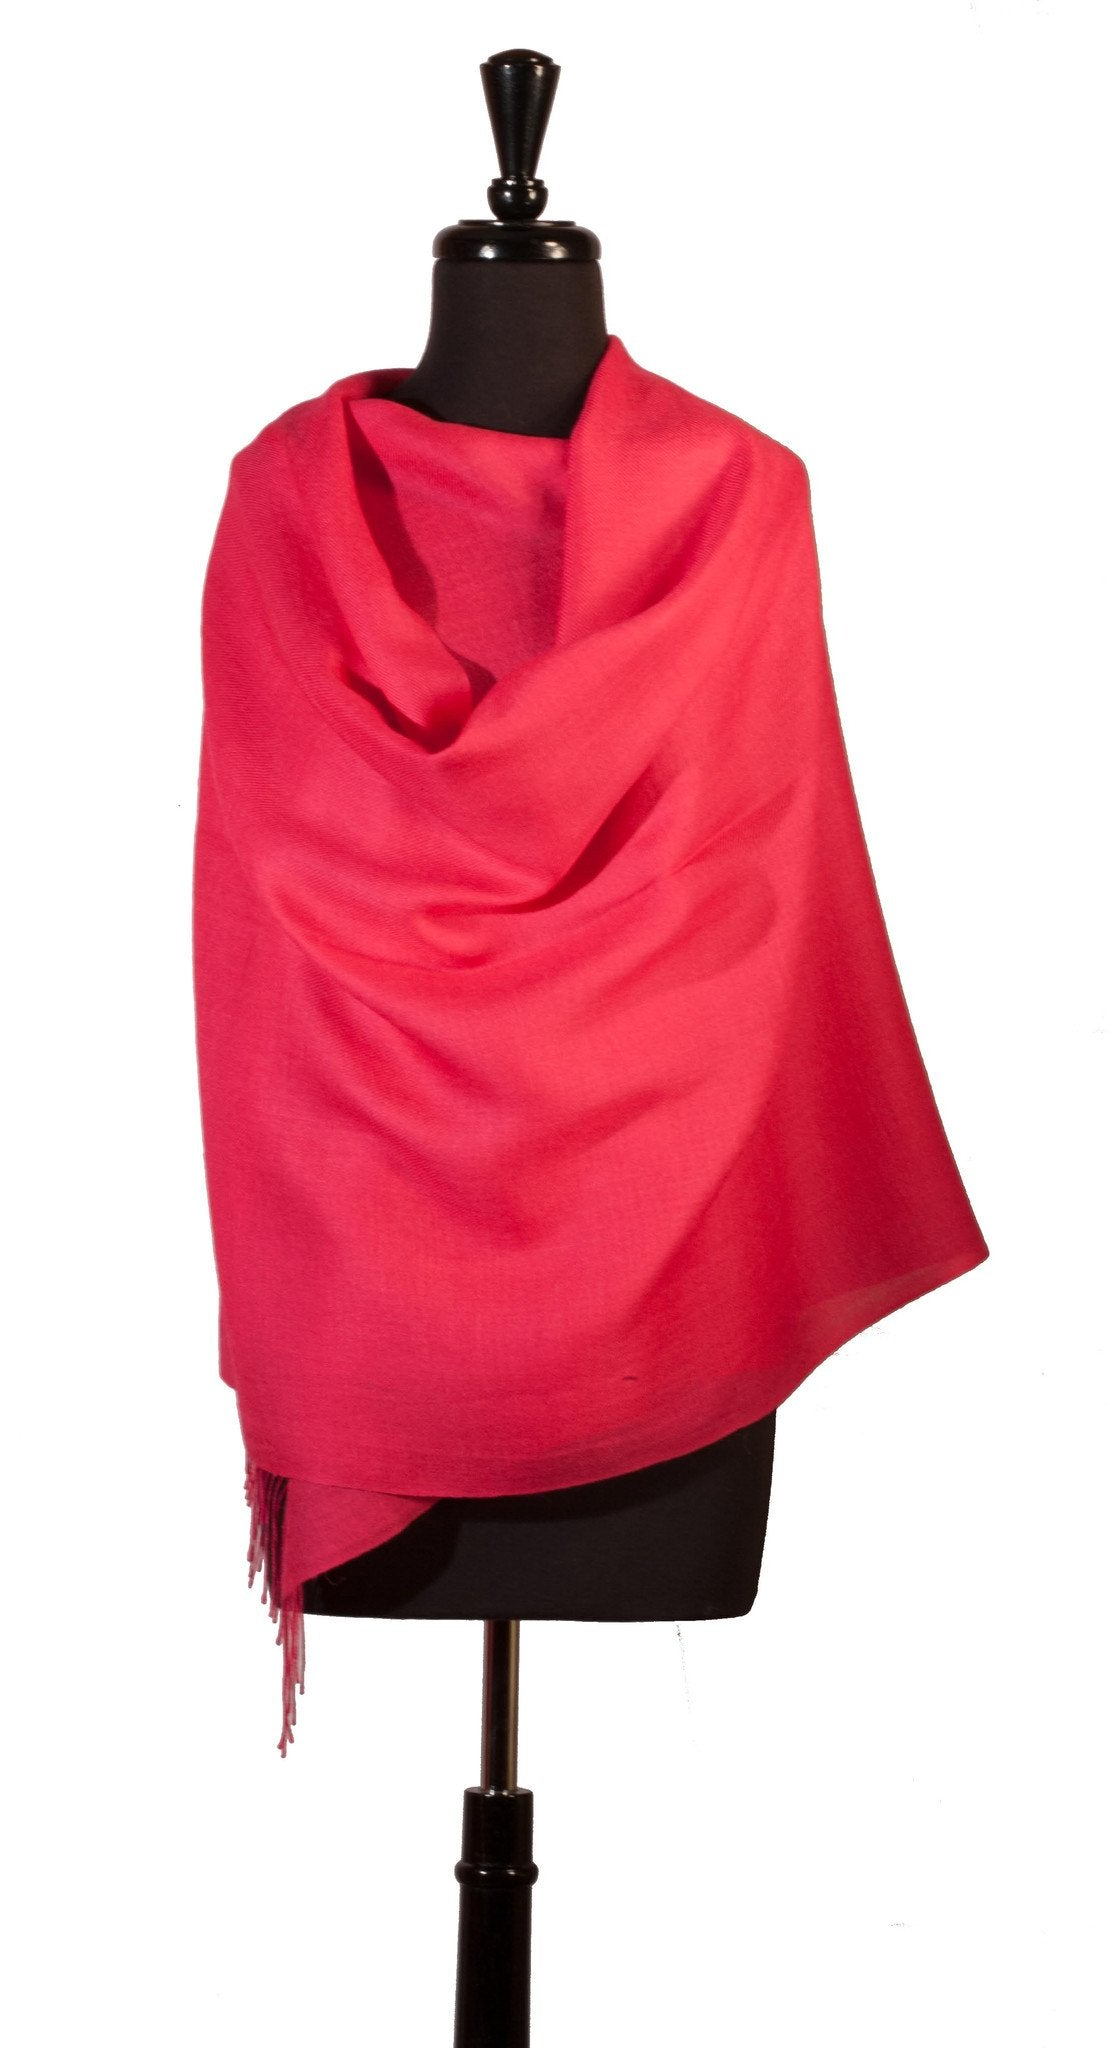 Baby Alpaca & Silk Shawl in Solid Color - Pink - Qinti - The Peruvian Shop